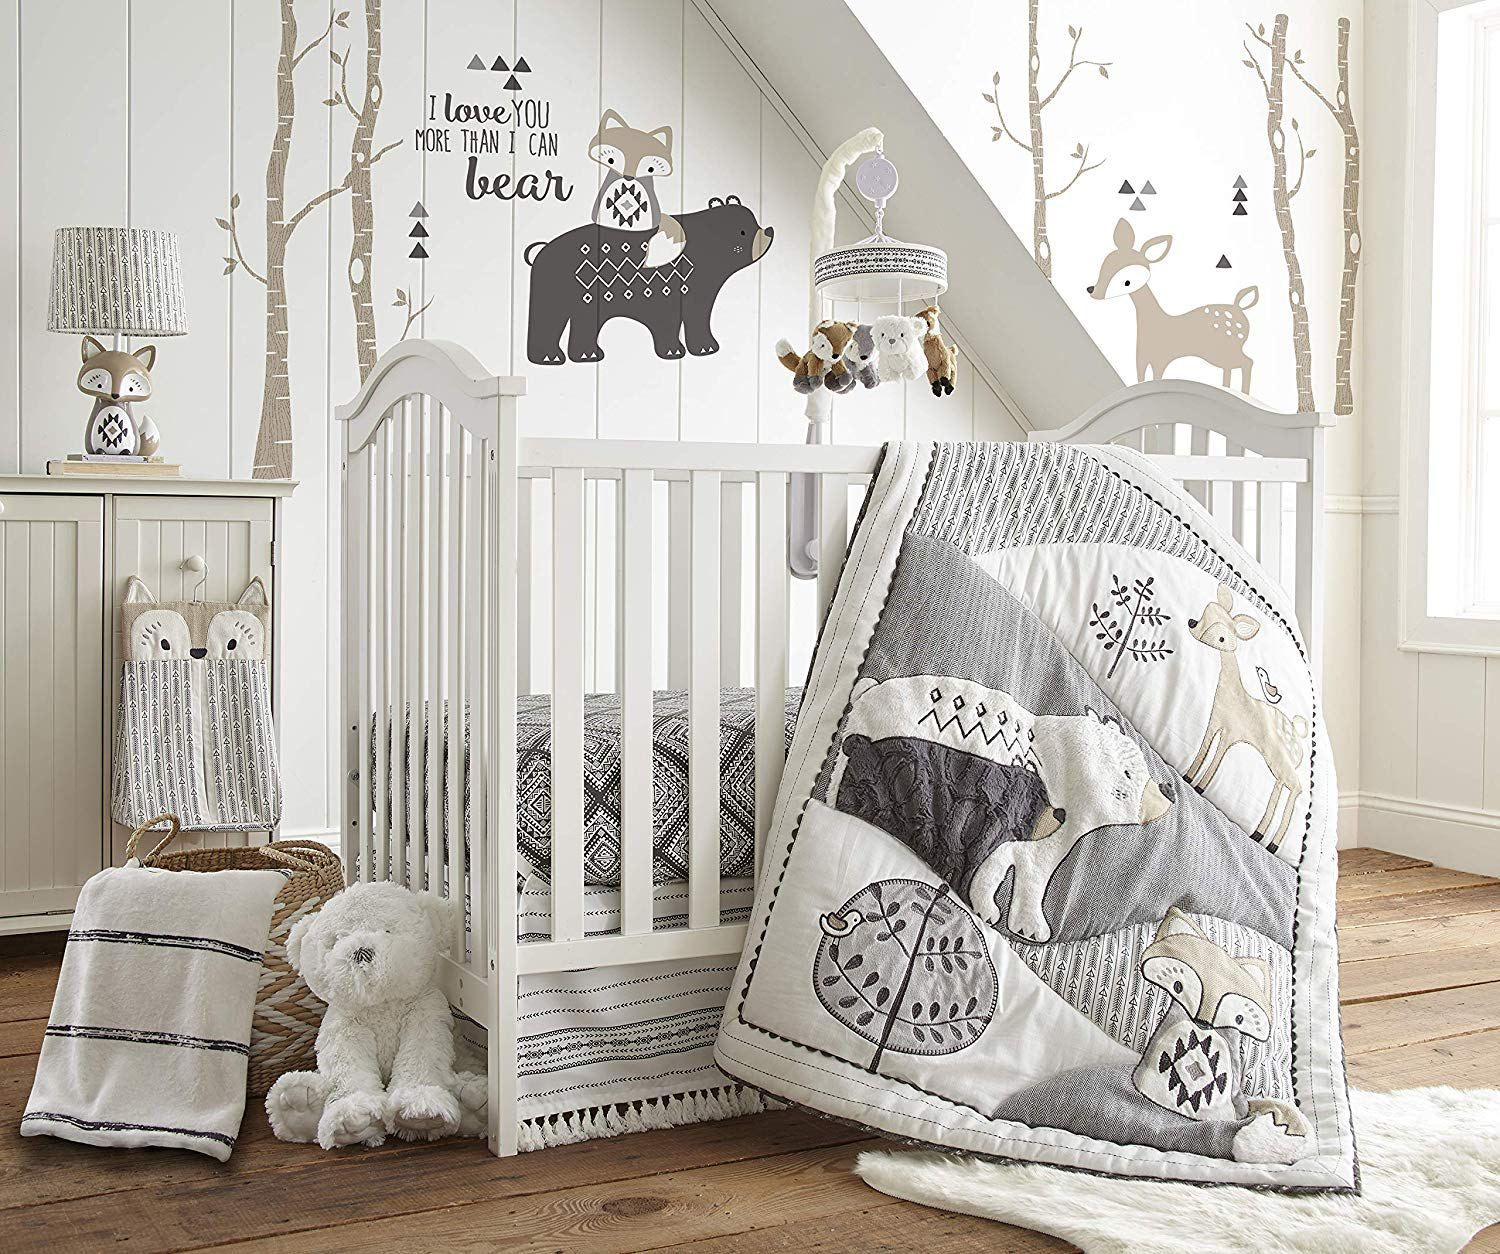 Bear Nursery Ideas Animal Nursery Woodland Nursery Boy Or Girl Nursery Theme Amorecraftylif Woodland Nursery Boy Boy Nursery Themes Boy Nursery Bedding